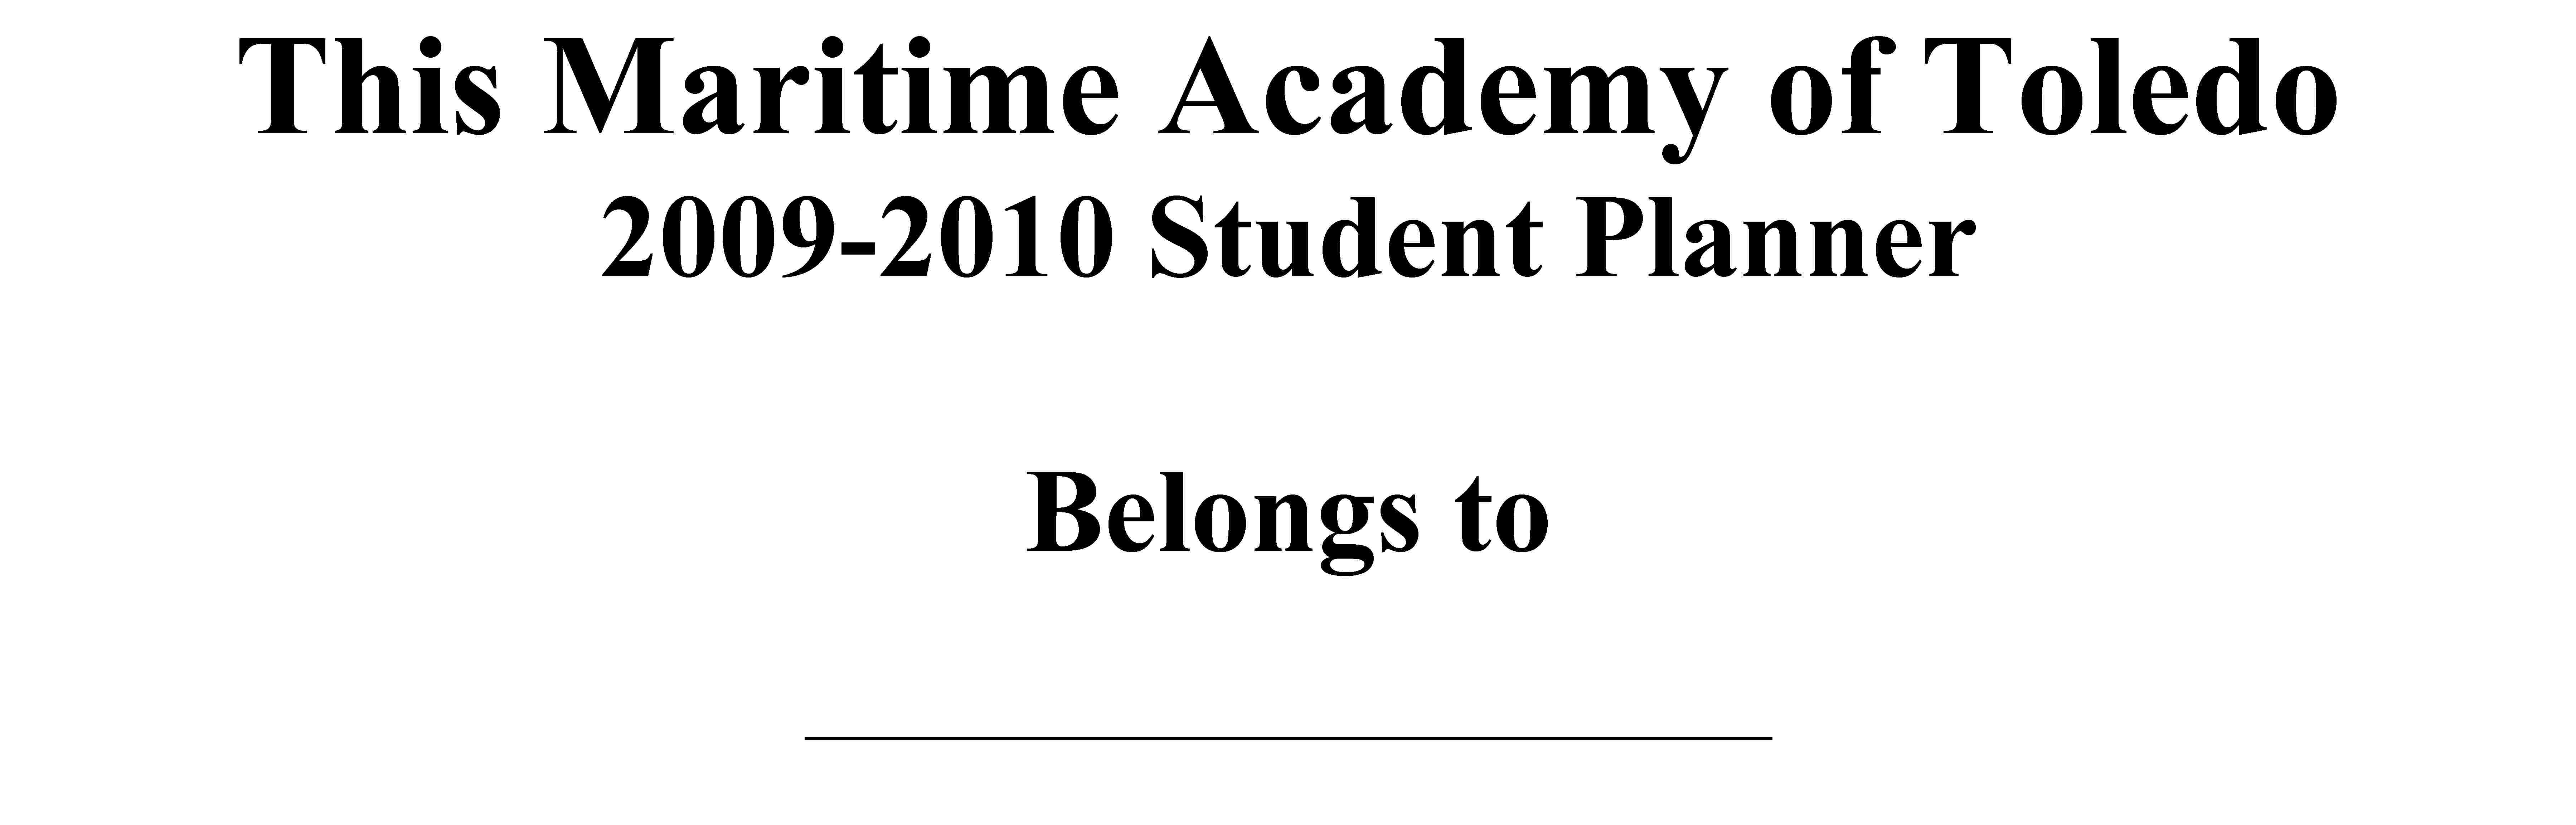 Student Handbook for the 2011-2012 School Year